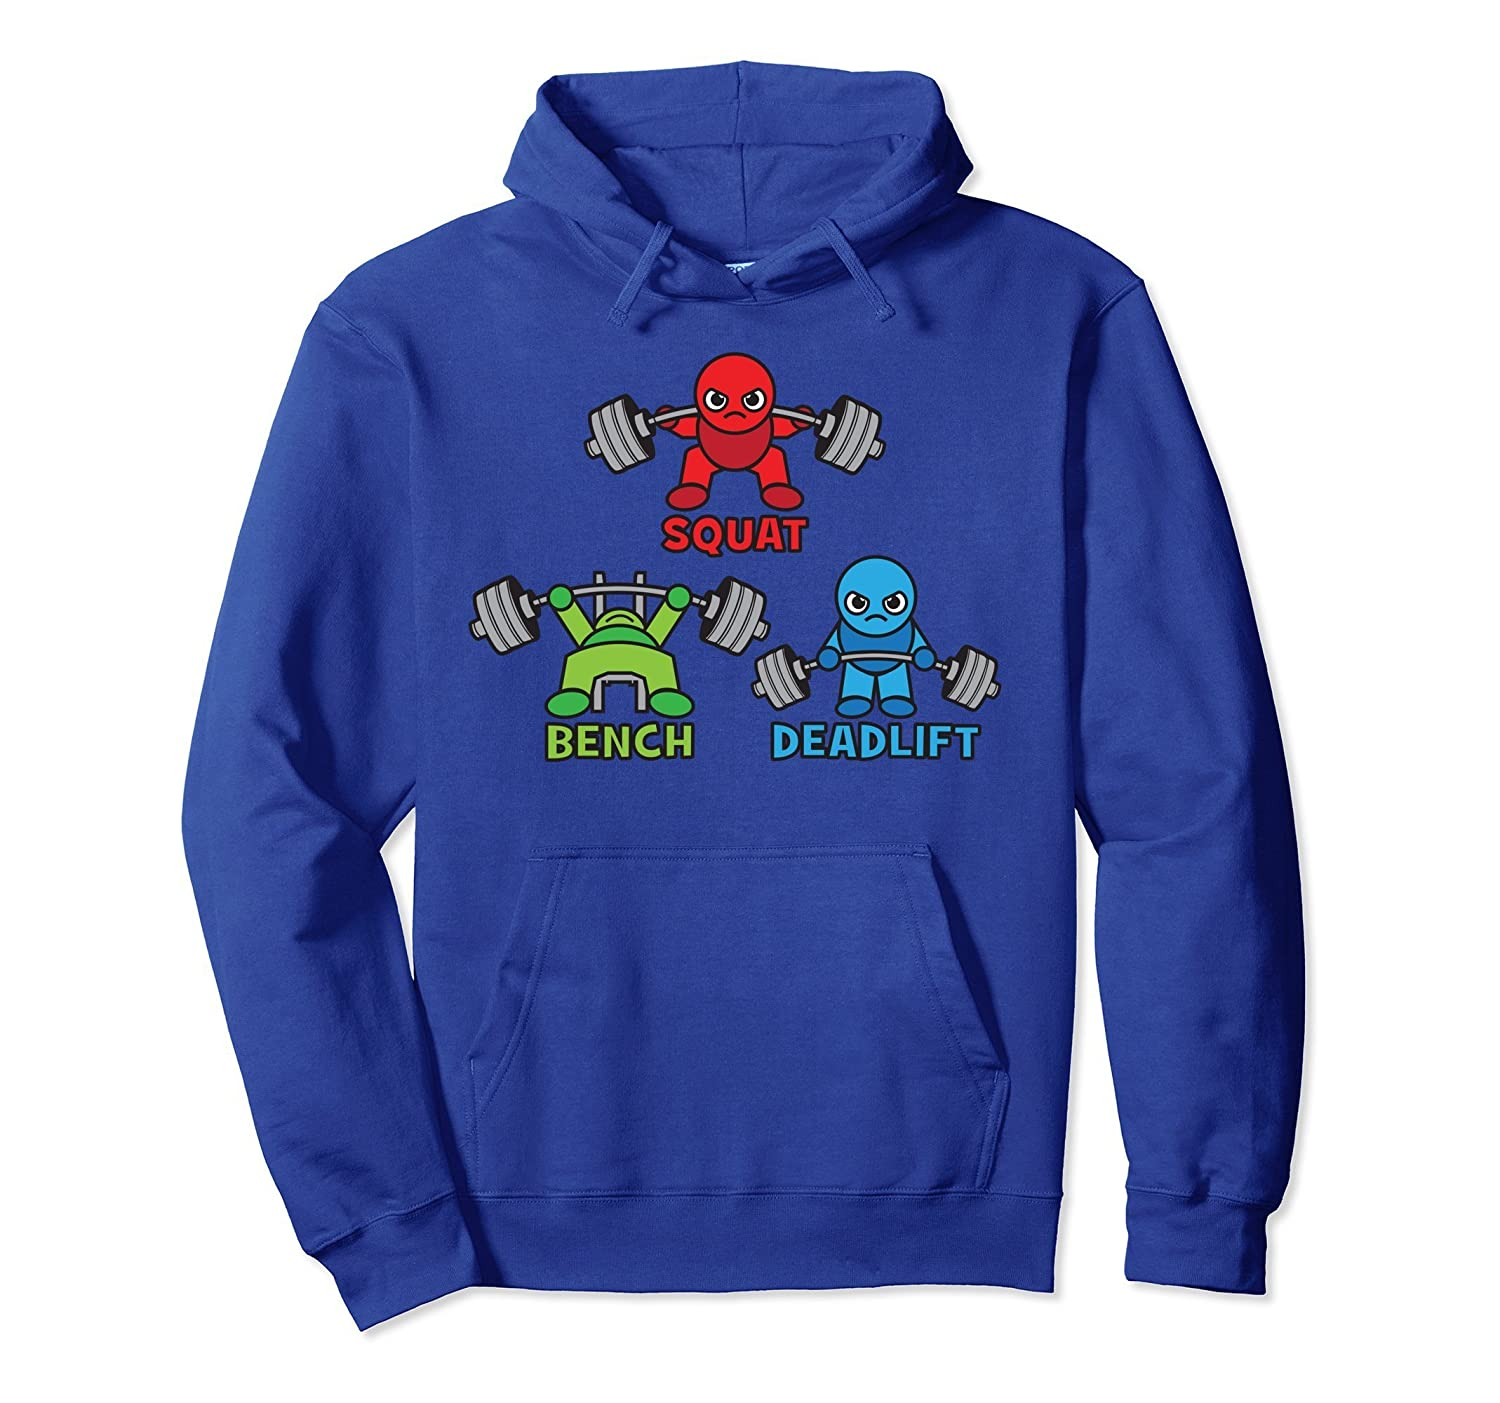 Squat, Bench Press, Deadlift, Cartoon Character - Gym Hoodie-fa